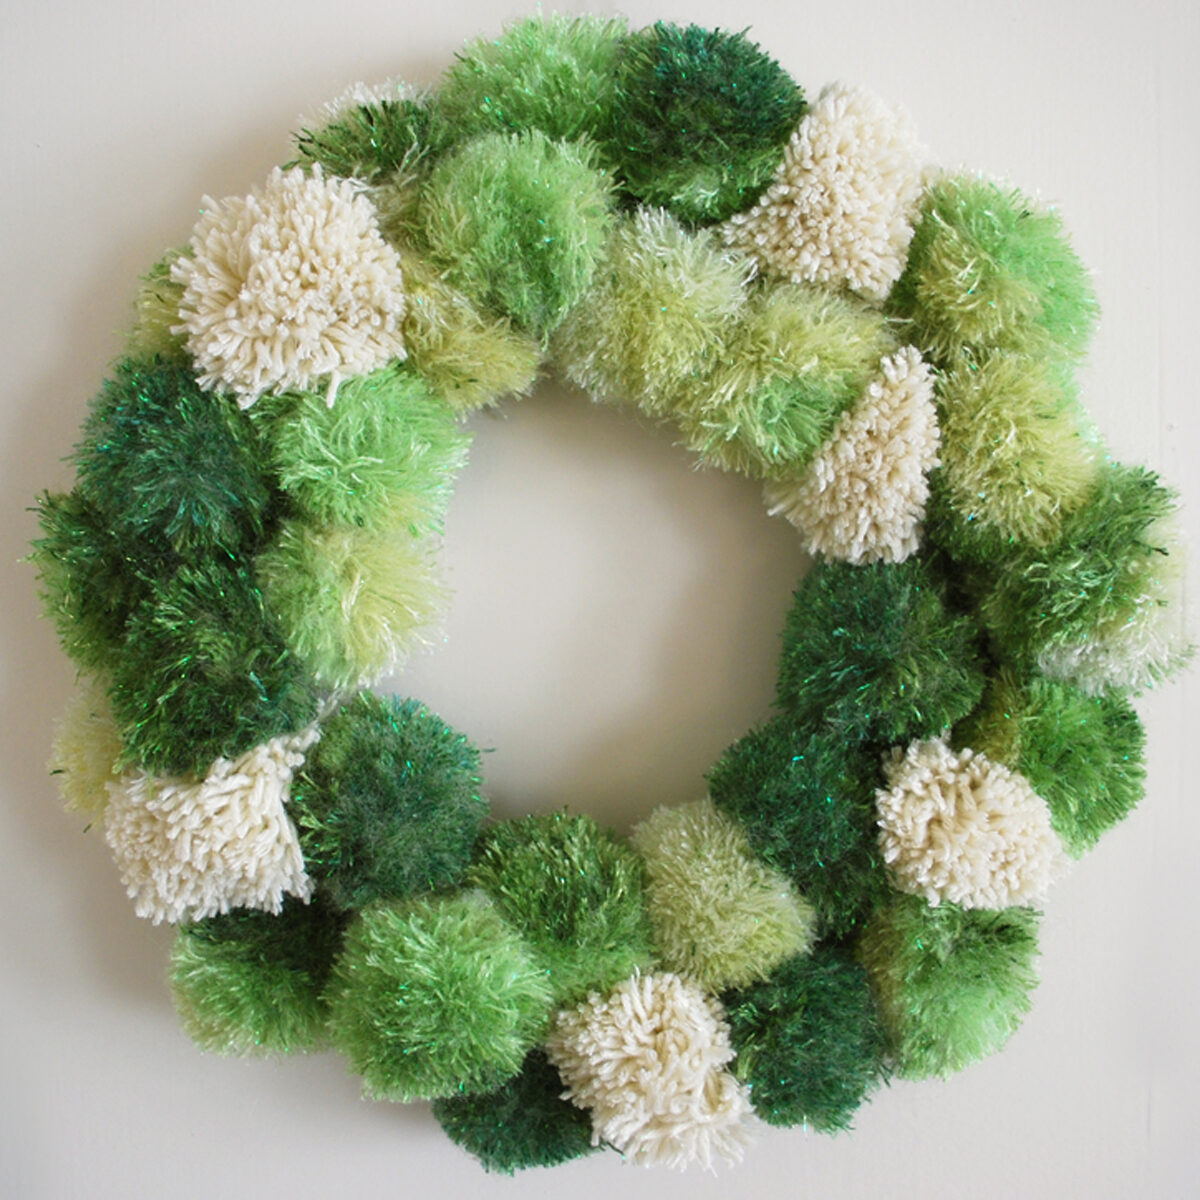 Yarn Pom Poms in wreath shape in green shades and white color.